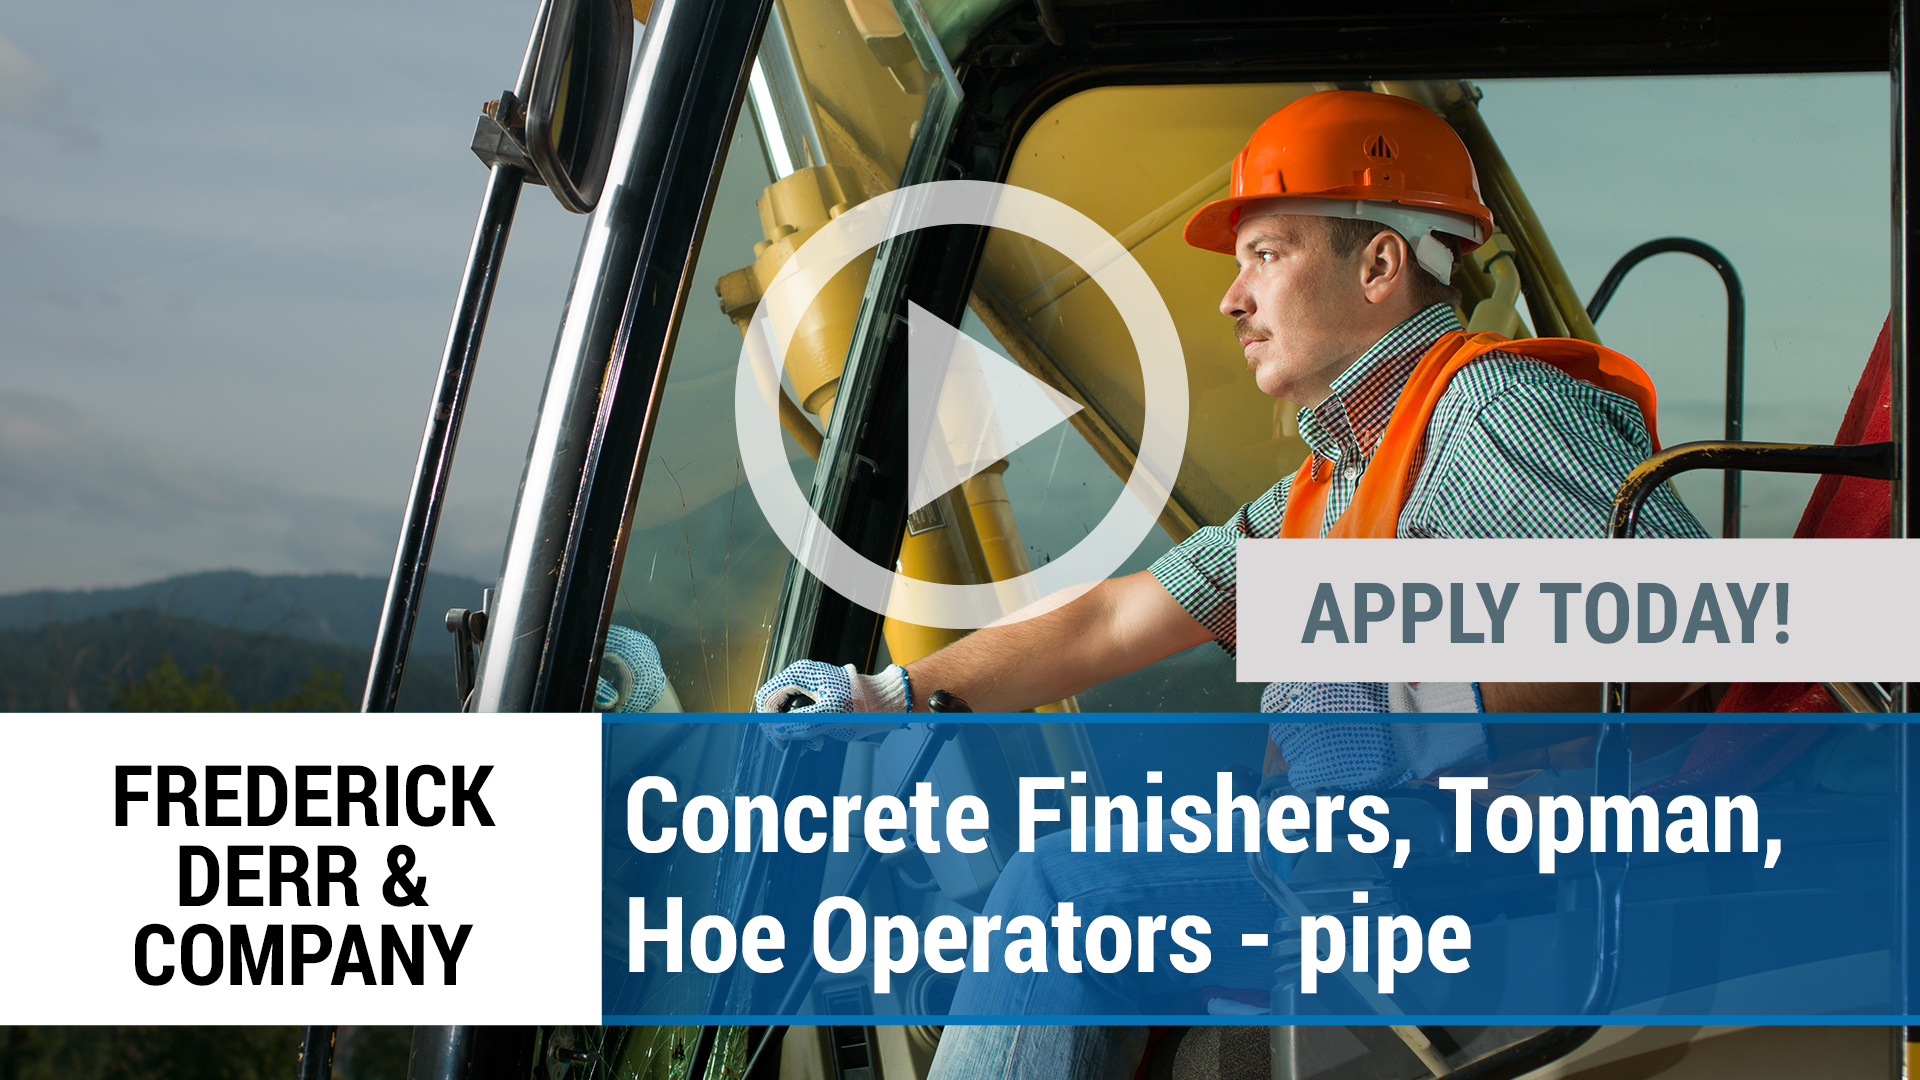 Watch our careers video for available job opening Concrete Finishers, Topman, Hoe Operators - pipe in Sarasota, FL